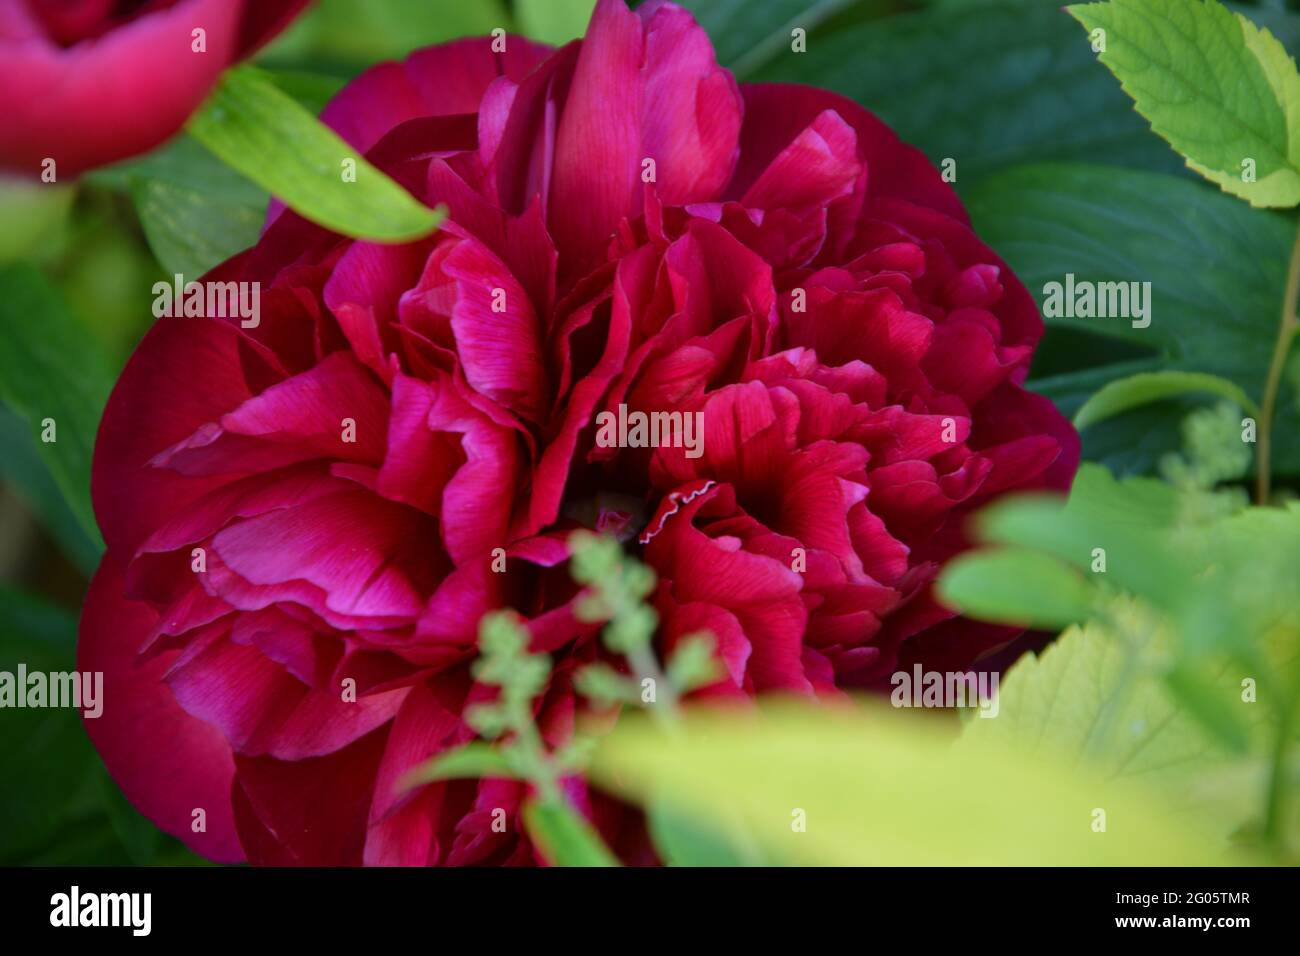 Double Red Peony,  Paeonia Officinalis Rubra Plena, Purely Beautiful and Peaceful Floral Space Stock Photo